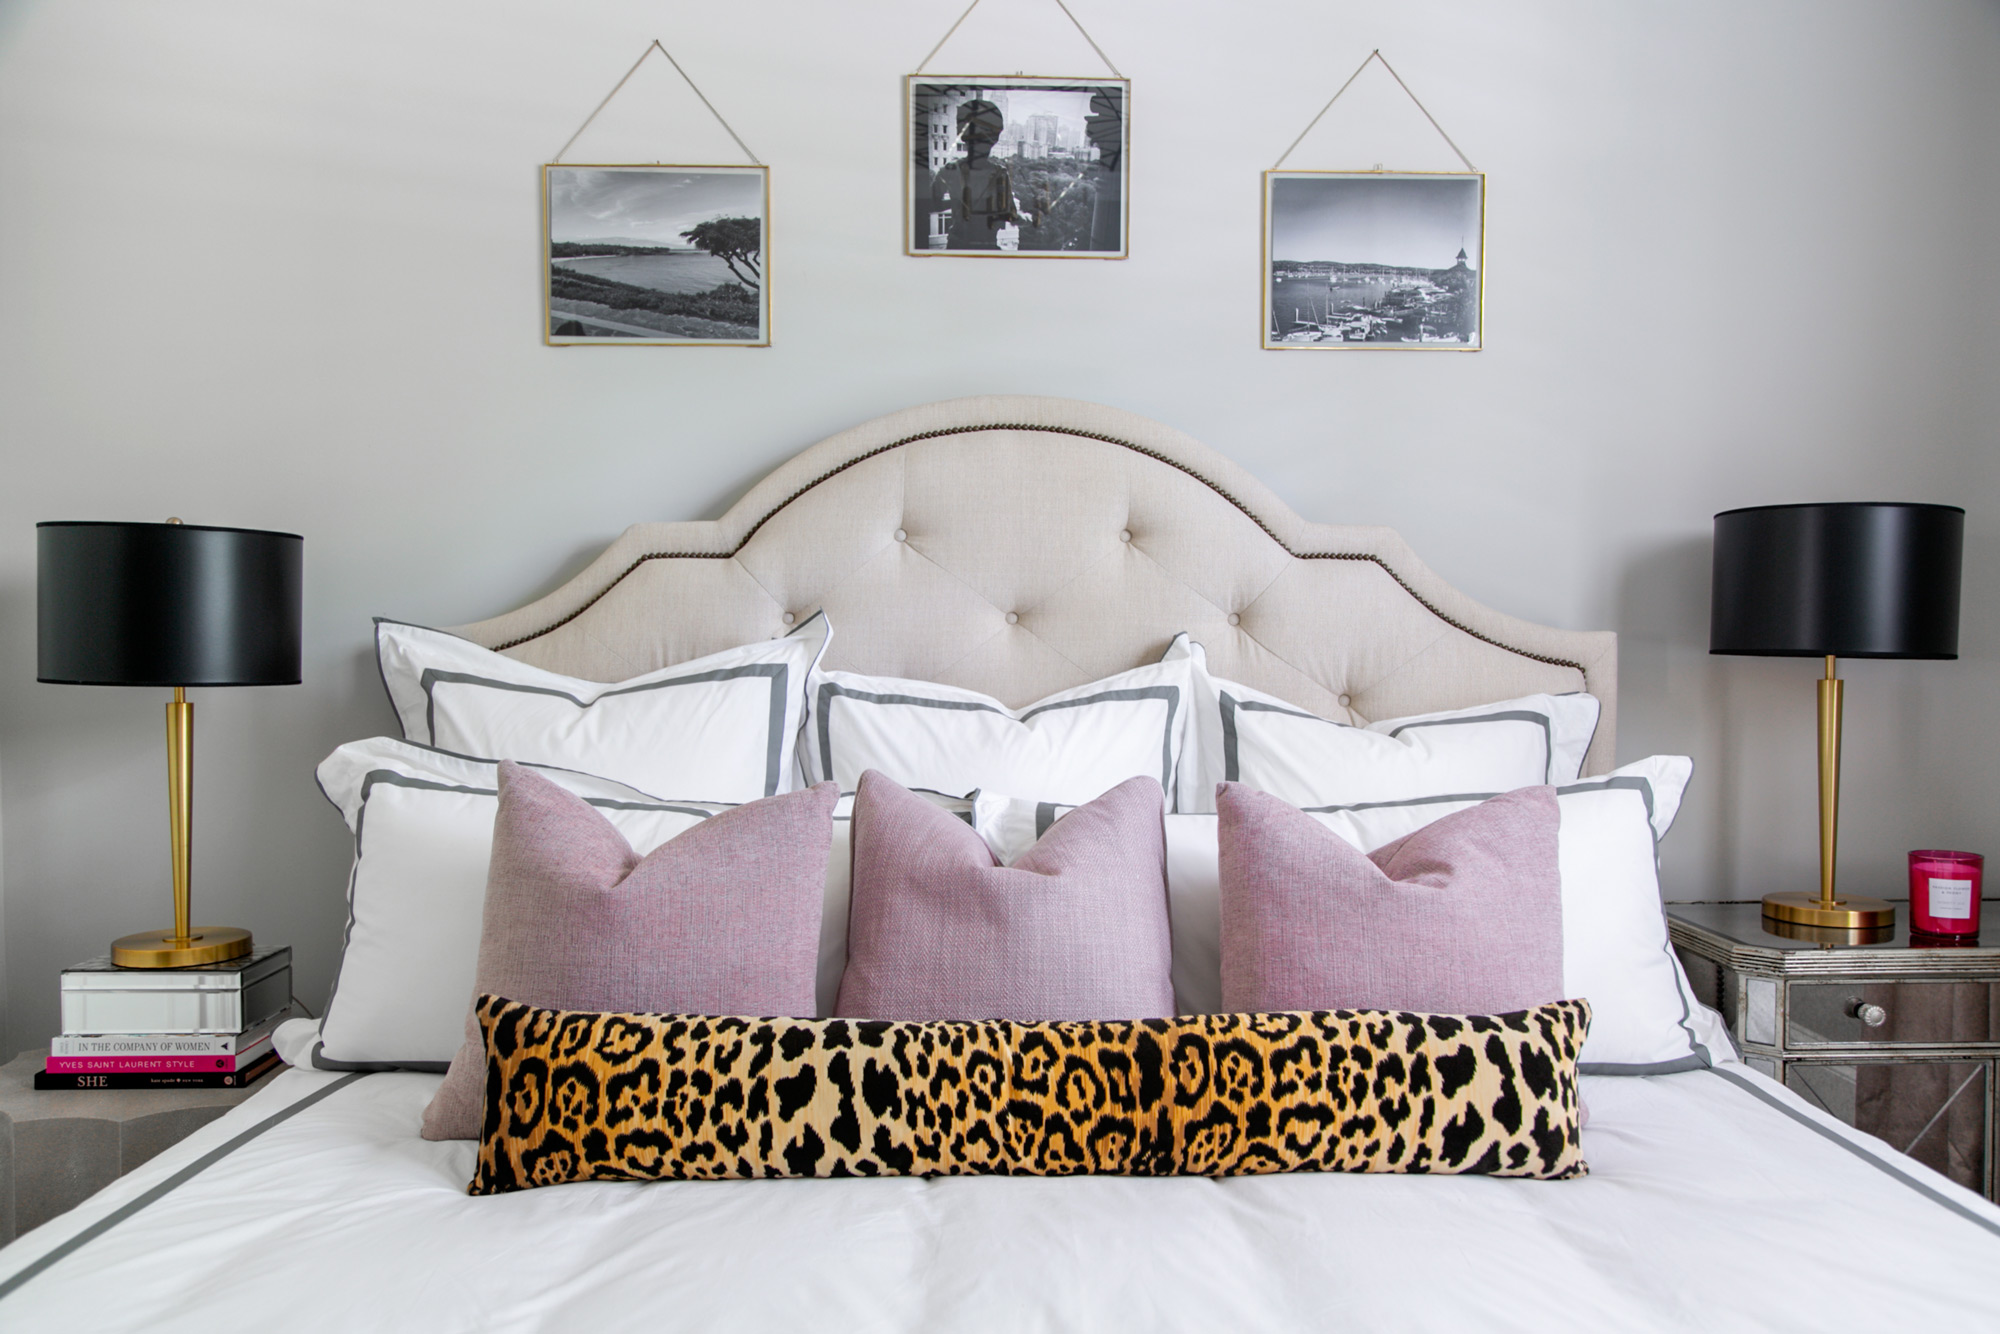 Chic guest bedroom with black and brass lamps, upholstered headboard, brass accessories, and textured throw pillows